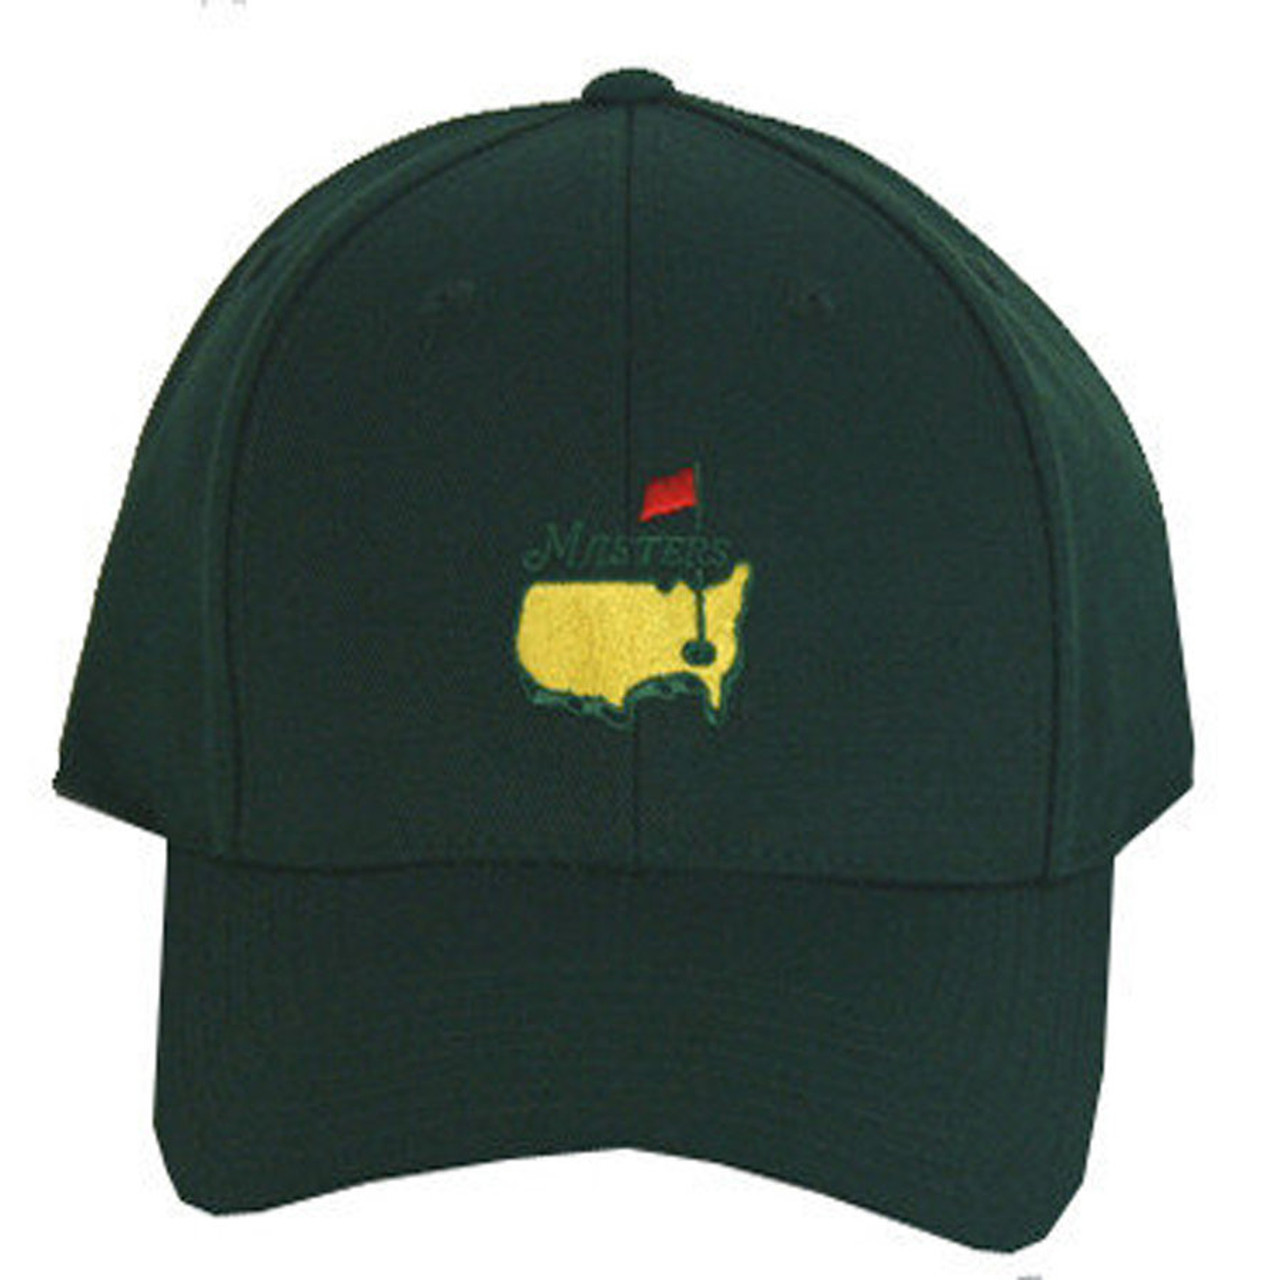 8d5ee02652d Masters Fitted Hat - Green - ProGolfUSA